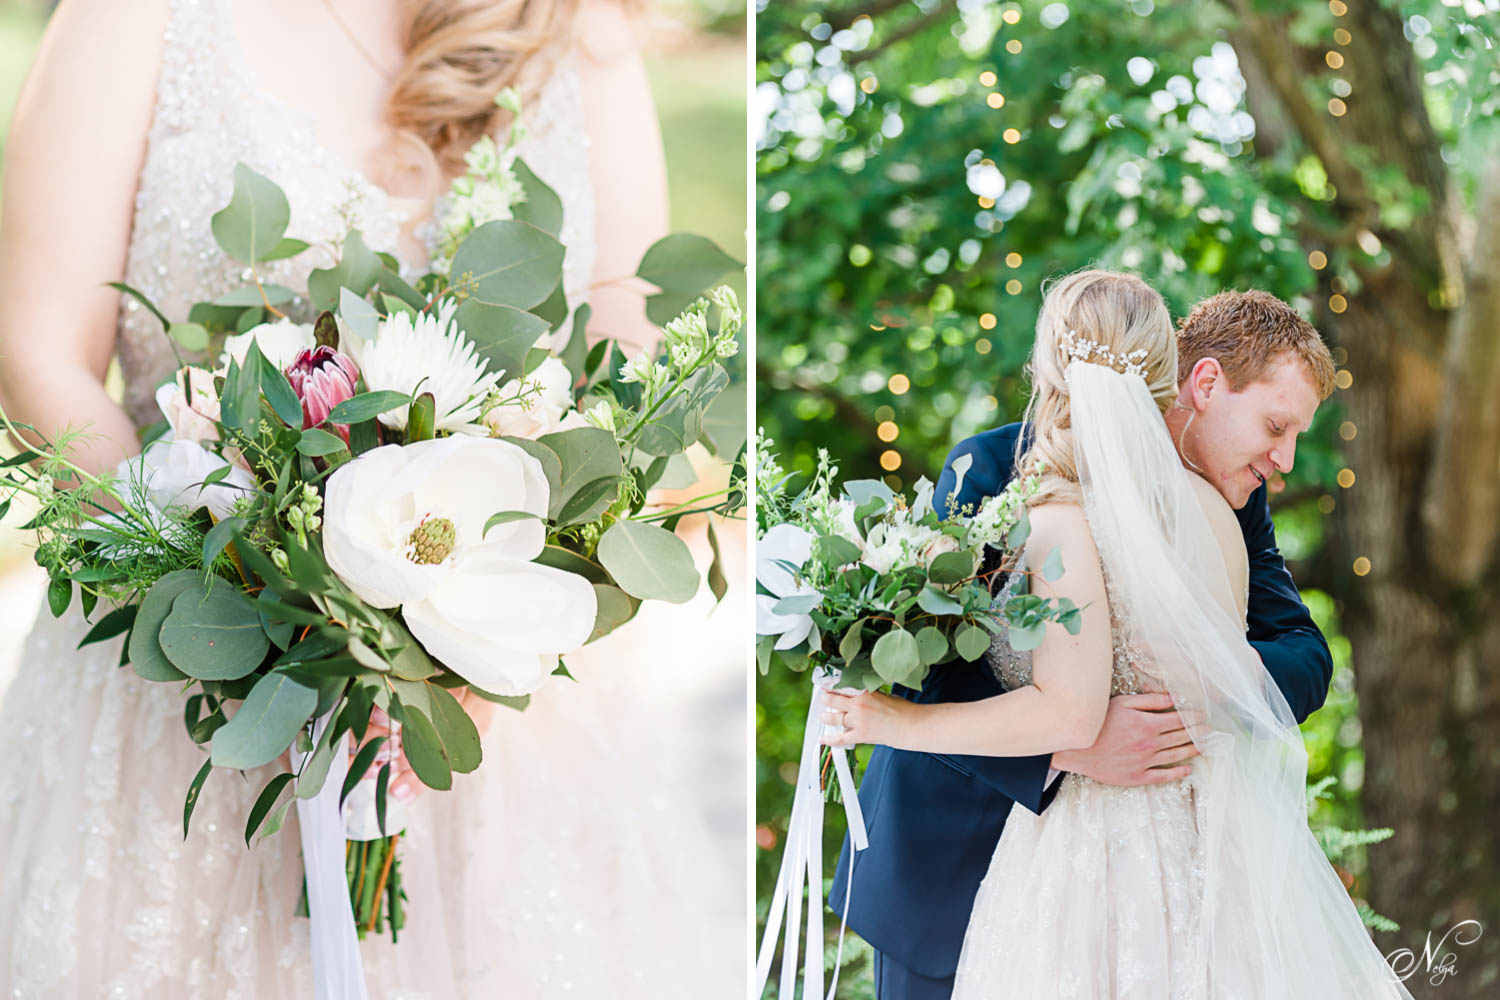 bride's bouquet with huge white flower, and dusty rose colored flowers with greenery.